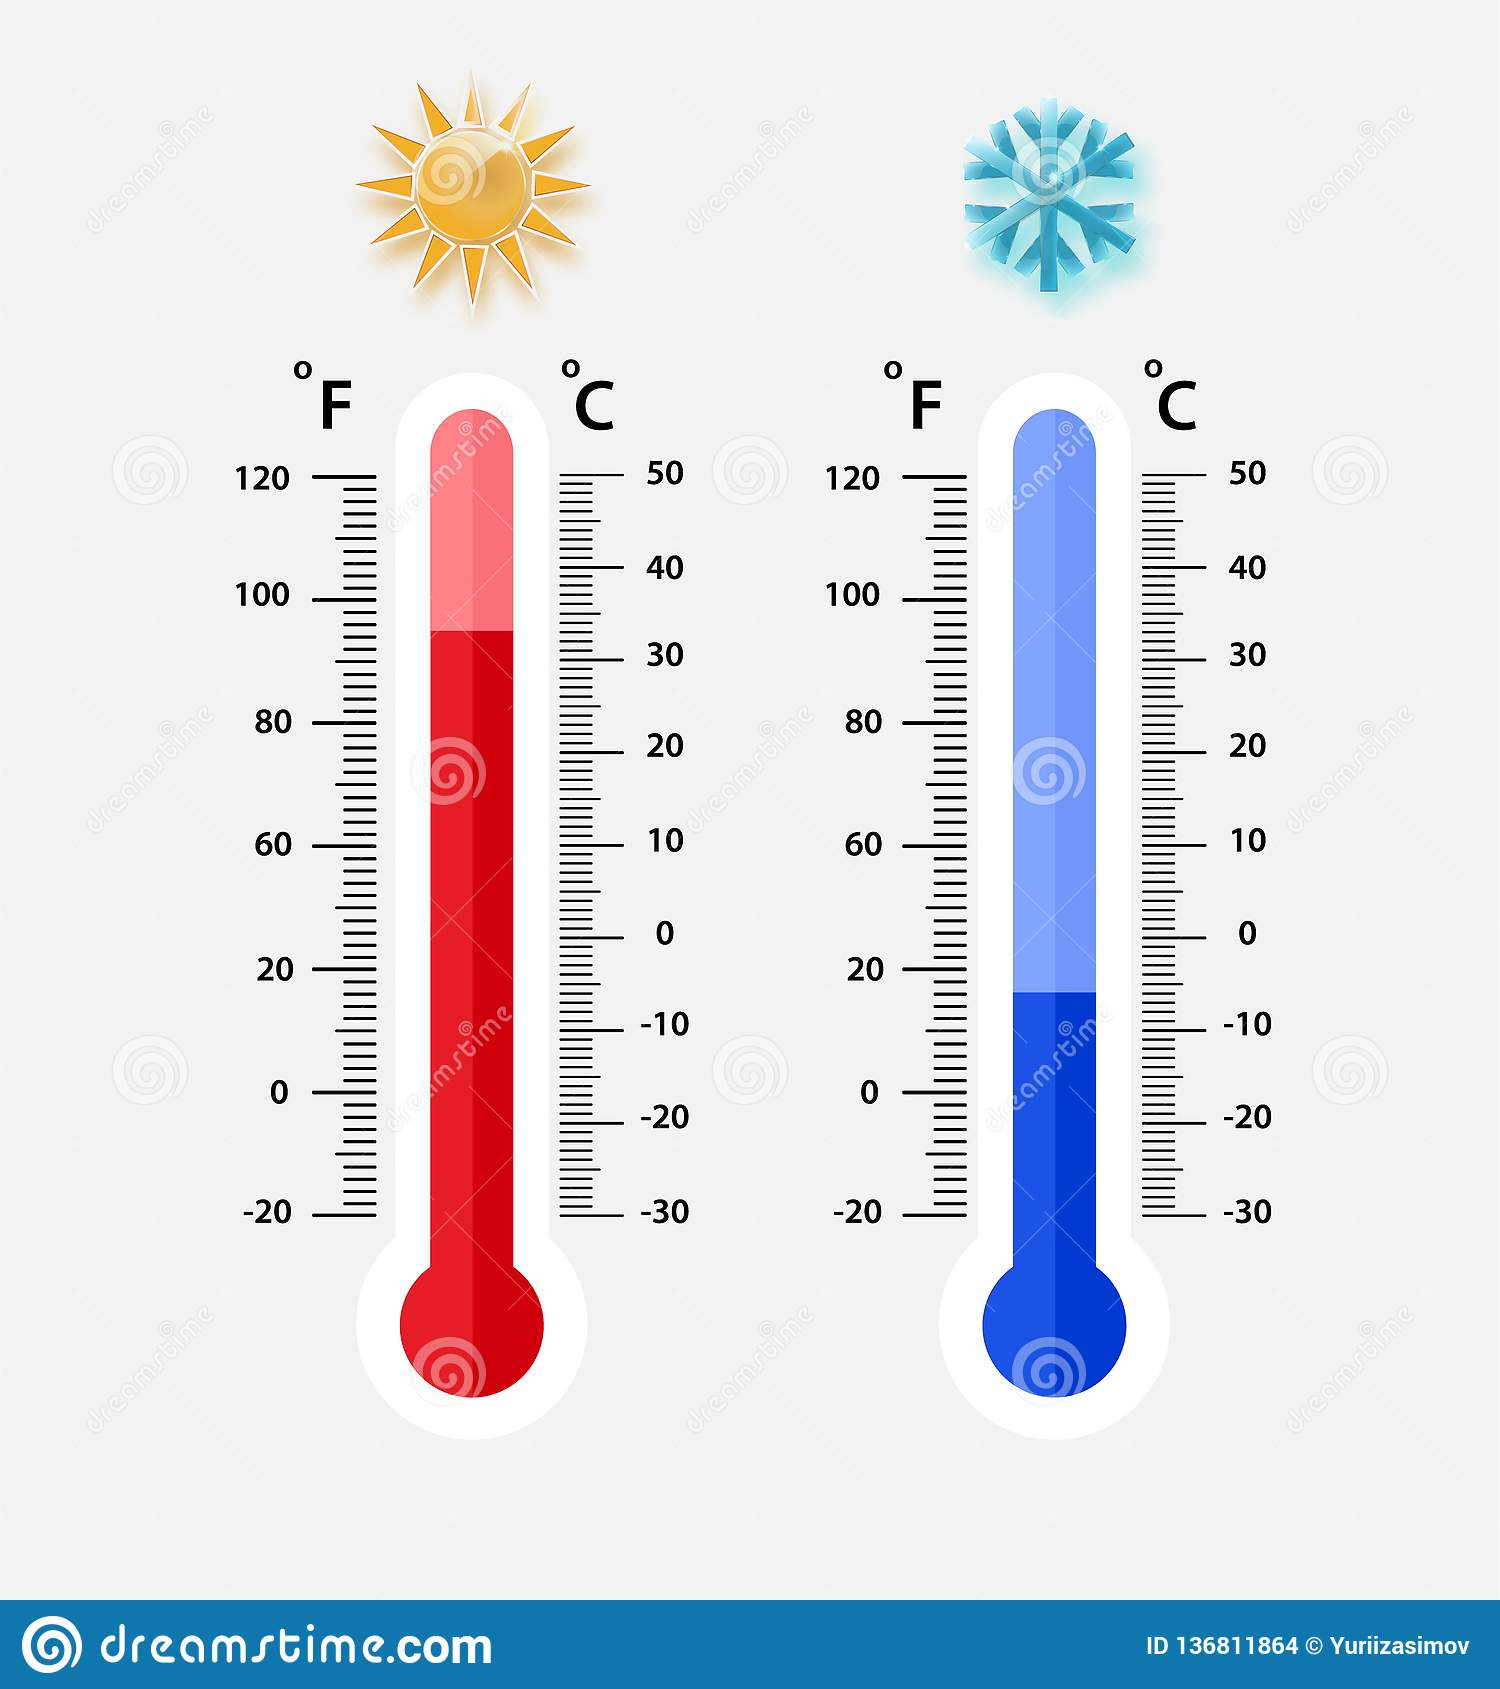 Thermometer Celsius Fahrenheit Royalty Free Stock Image